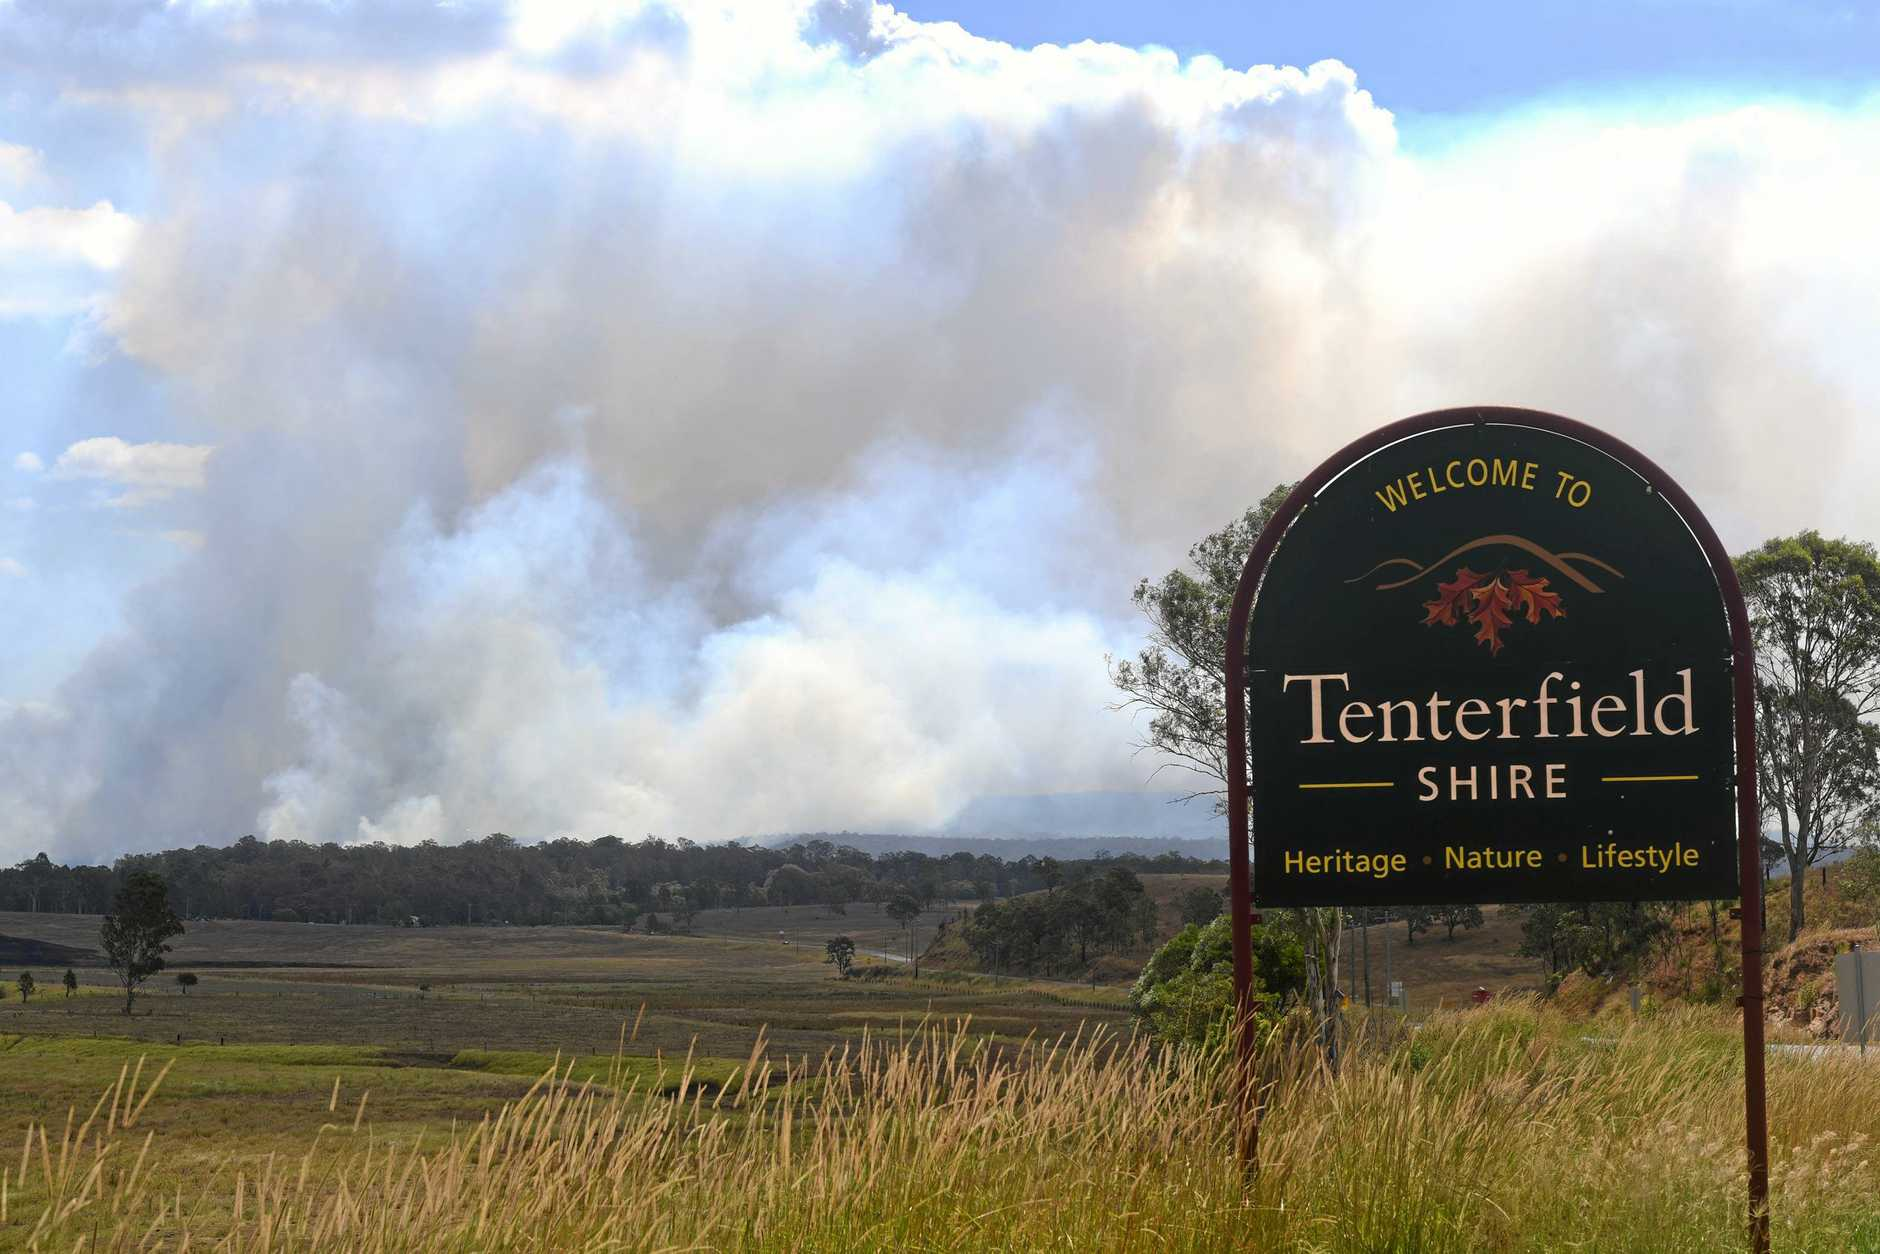 COMMUNITY PROJECTS: Tenterfield Shire Council recently selected 10